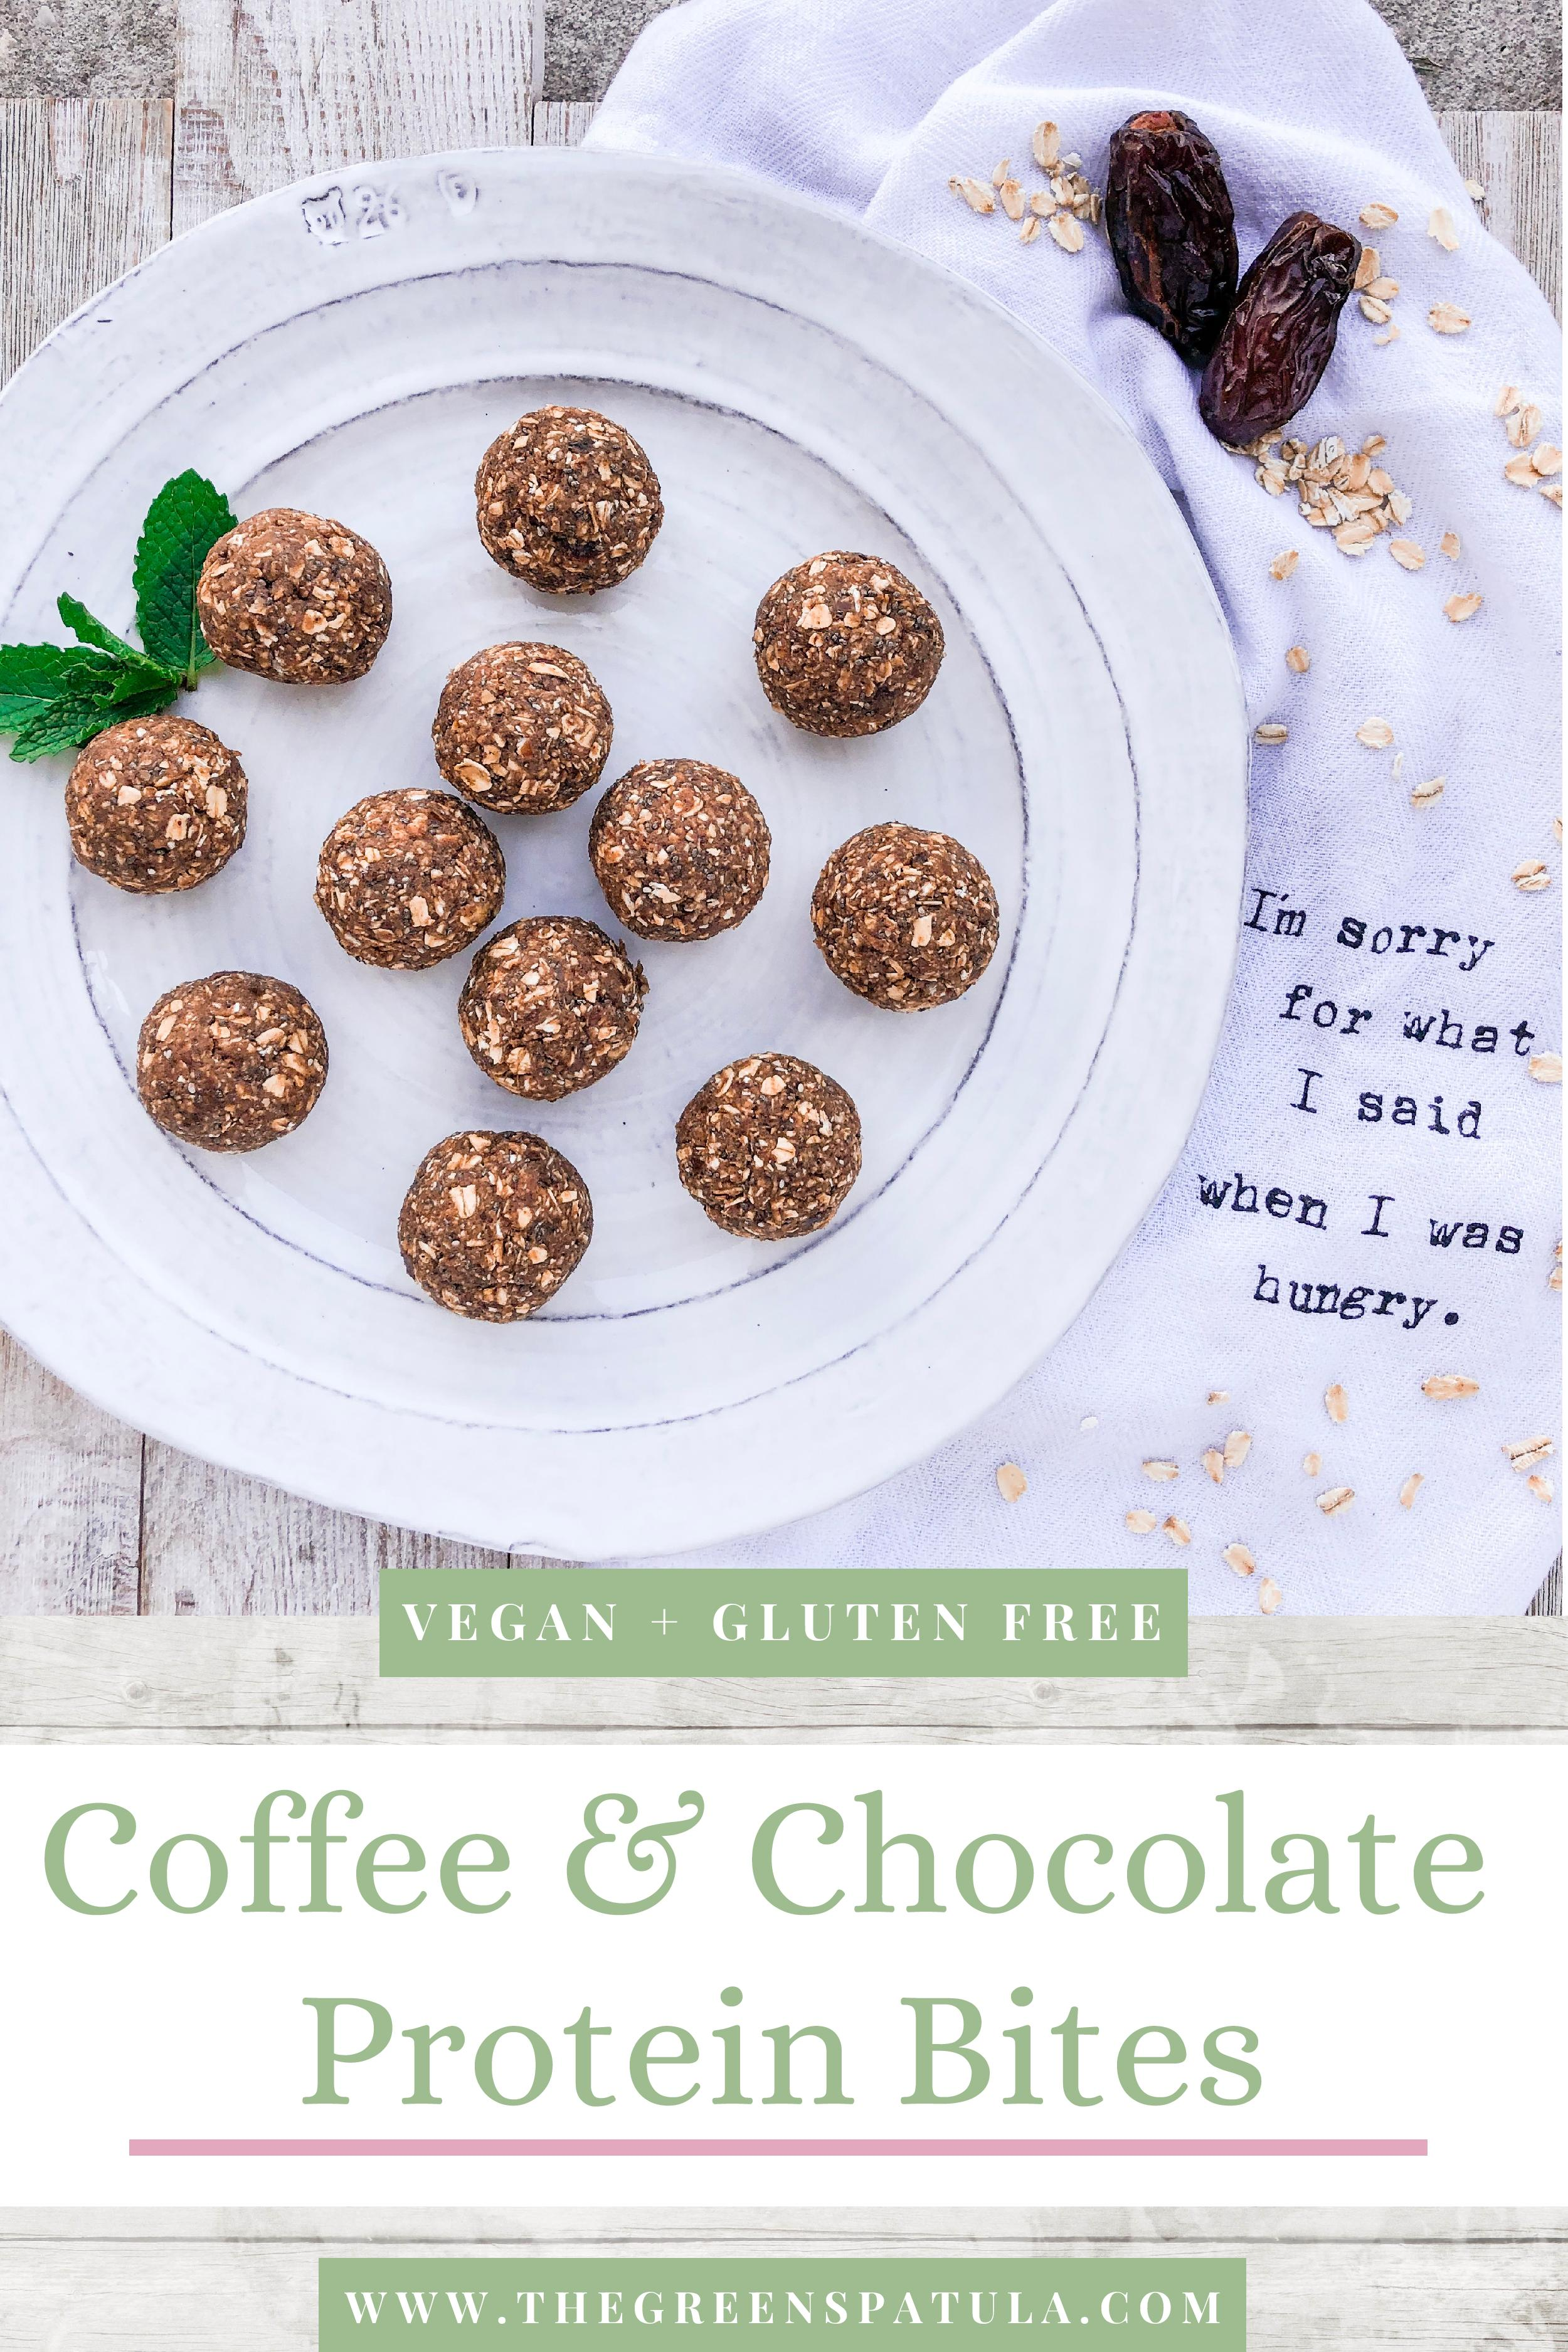 Coffee and Chocolate Protein Bites - Sweet, tasty, healthy, and plant-based breakfast to start your morning off with a smile. Made with all natural ingredients like rolled oats, dates, chia seeds, plant-based protein powder (not chalky). Great for breakfast or a snack! #kidapproved #vegan #plantbased #glutenfree #healthybreakfast #freedownload #healthysnack